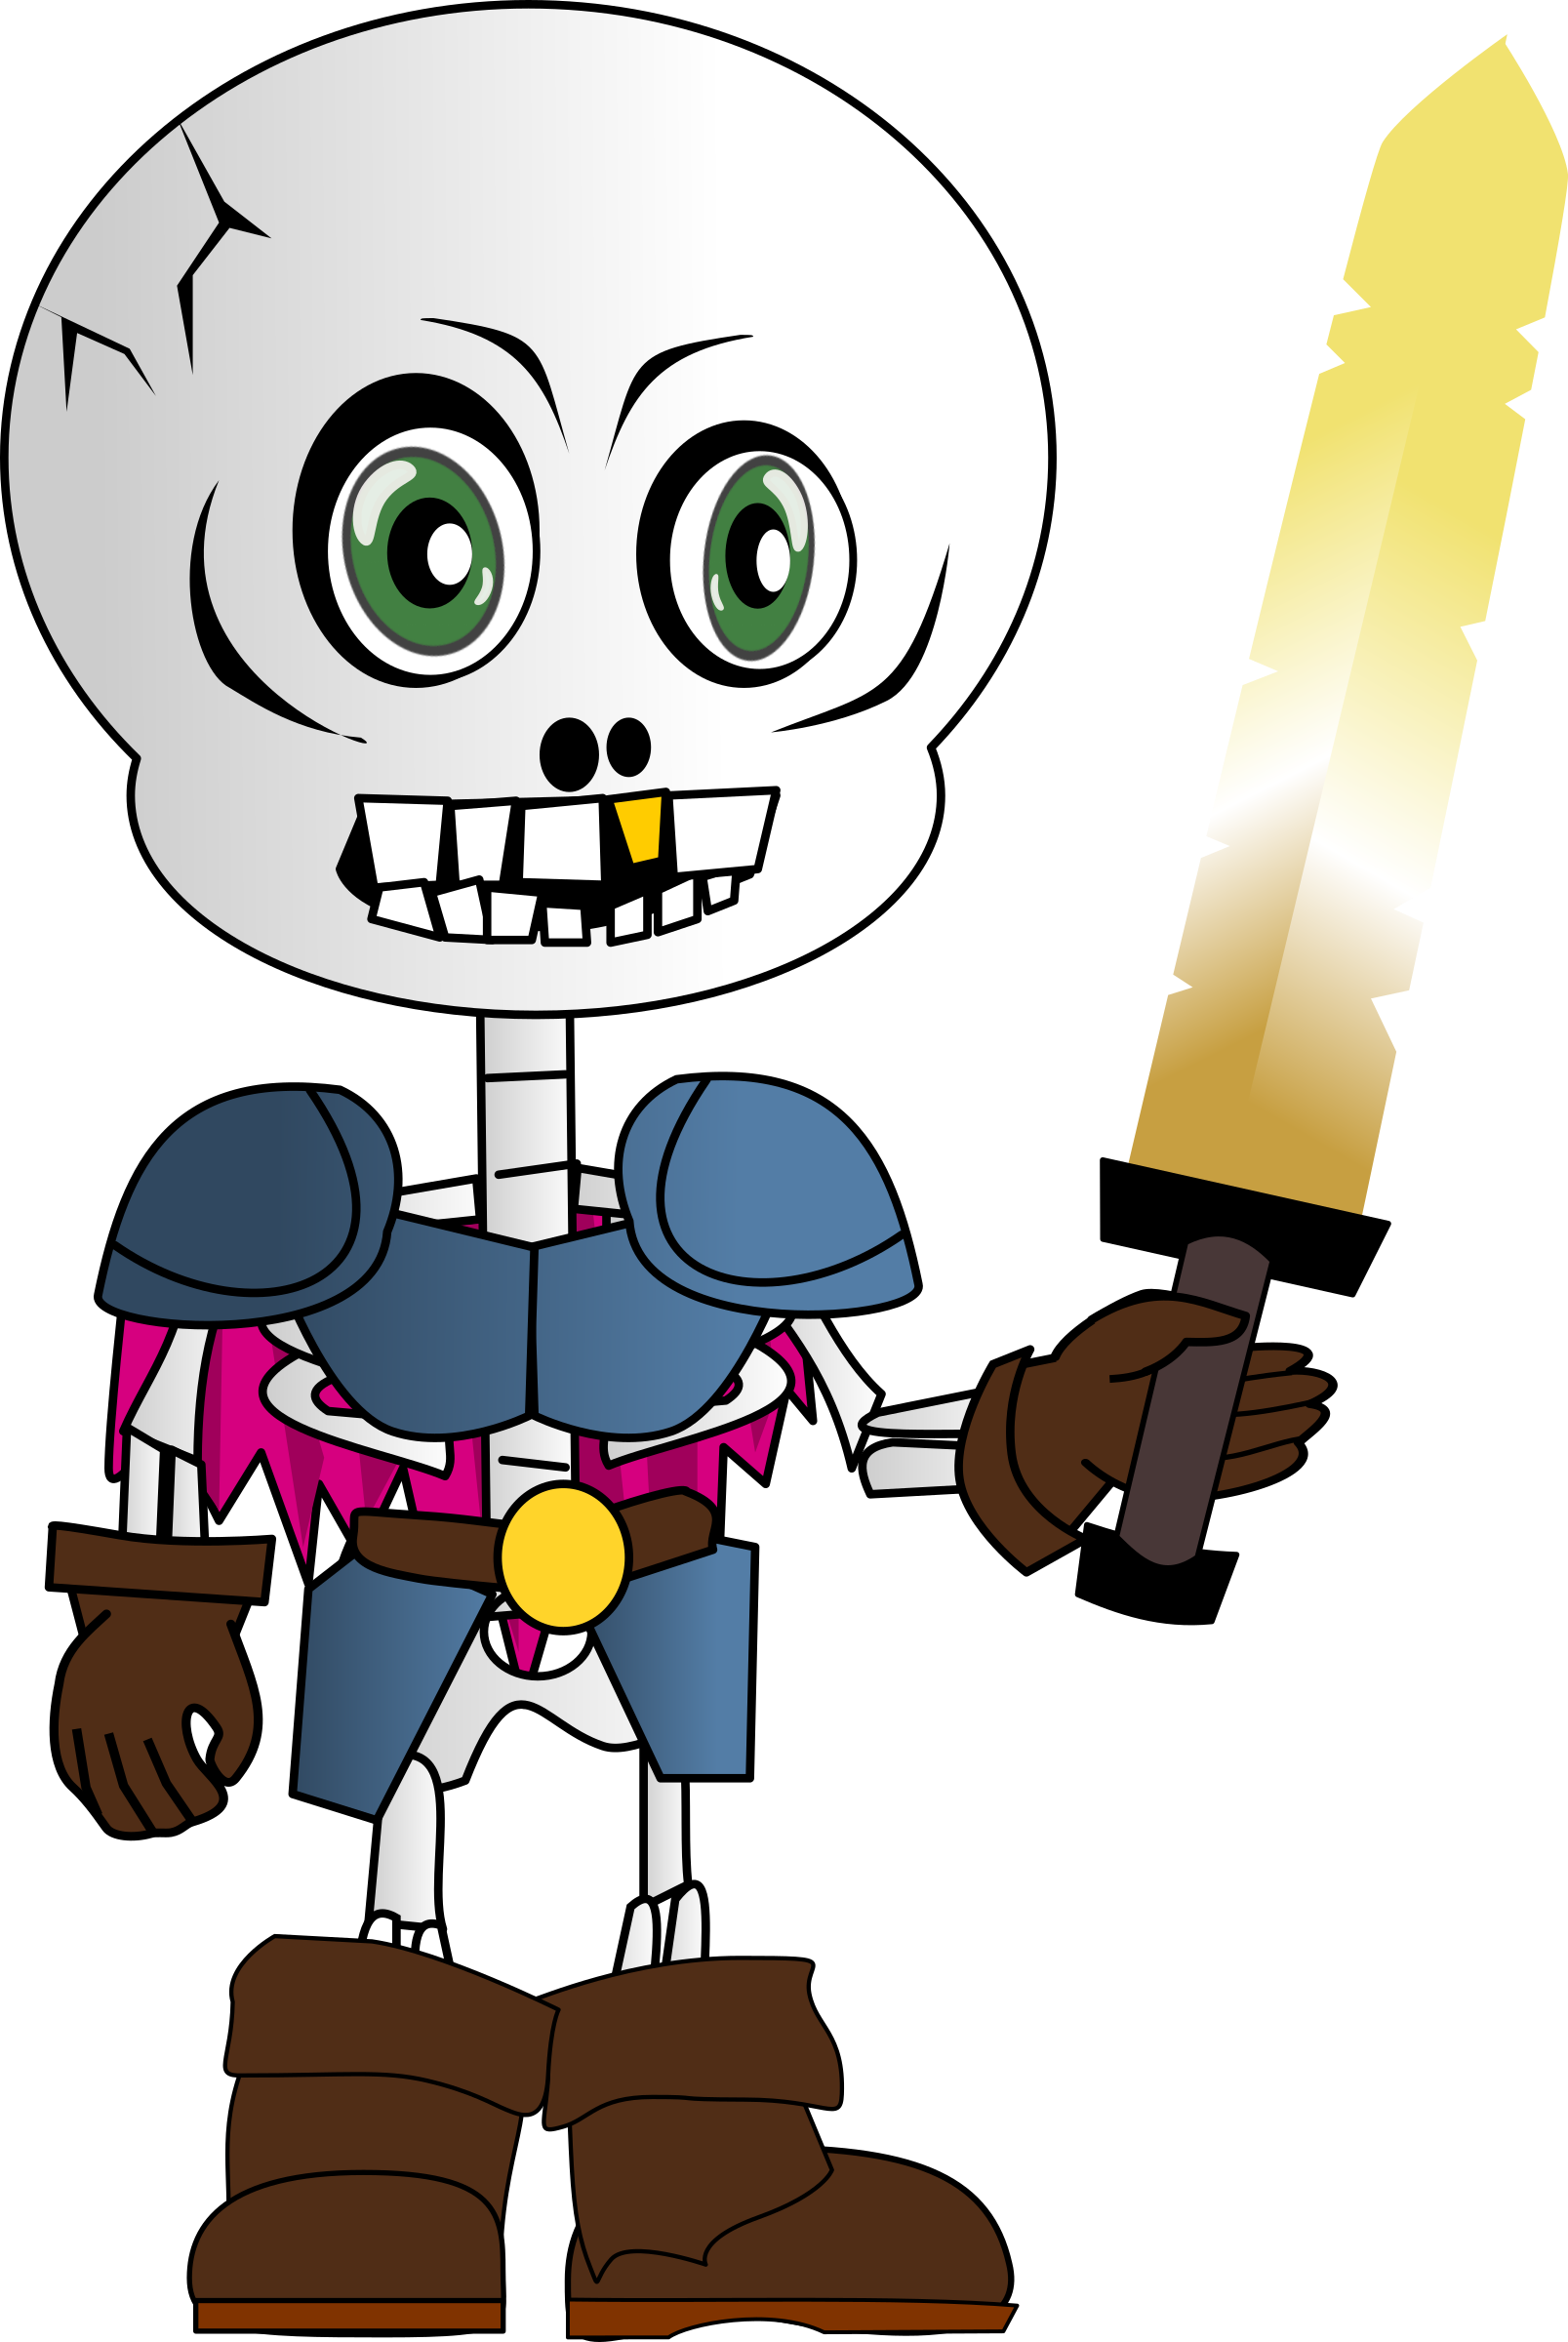 Skeleton Chibi by Peileppe